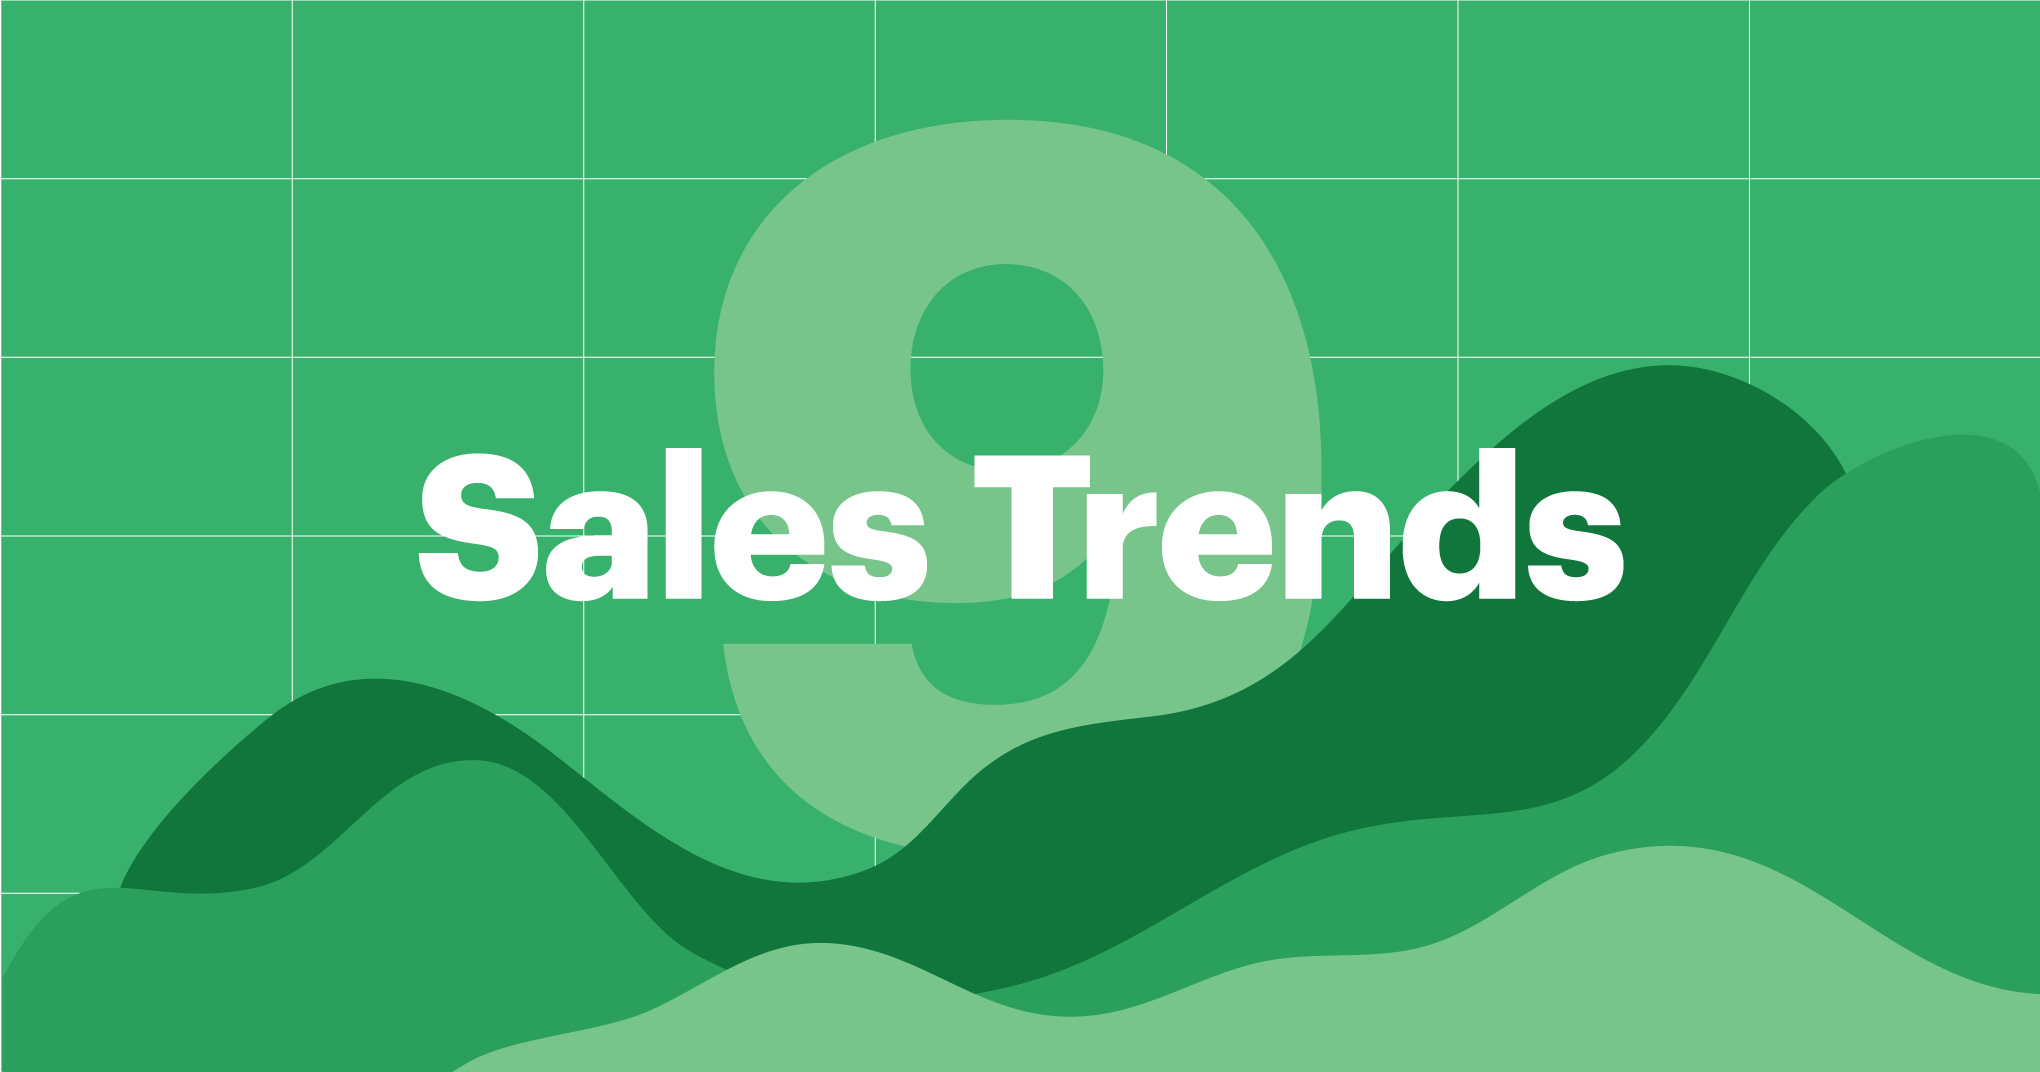 9 sales trends to look out for in 2018